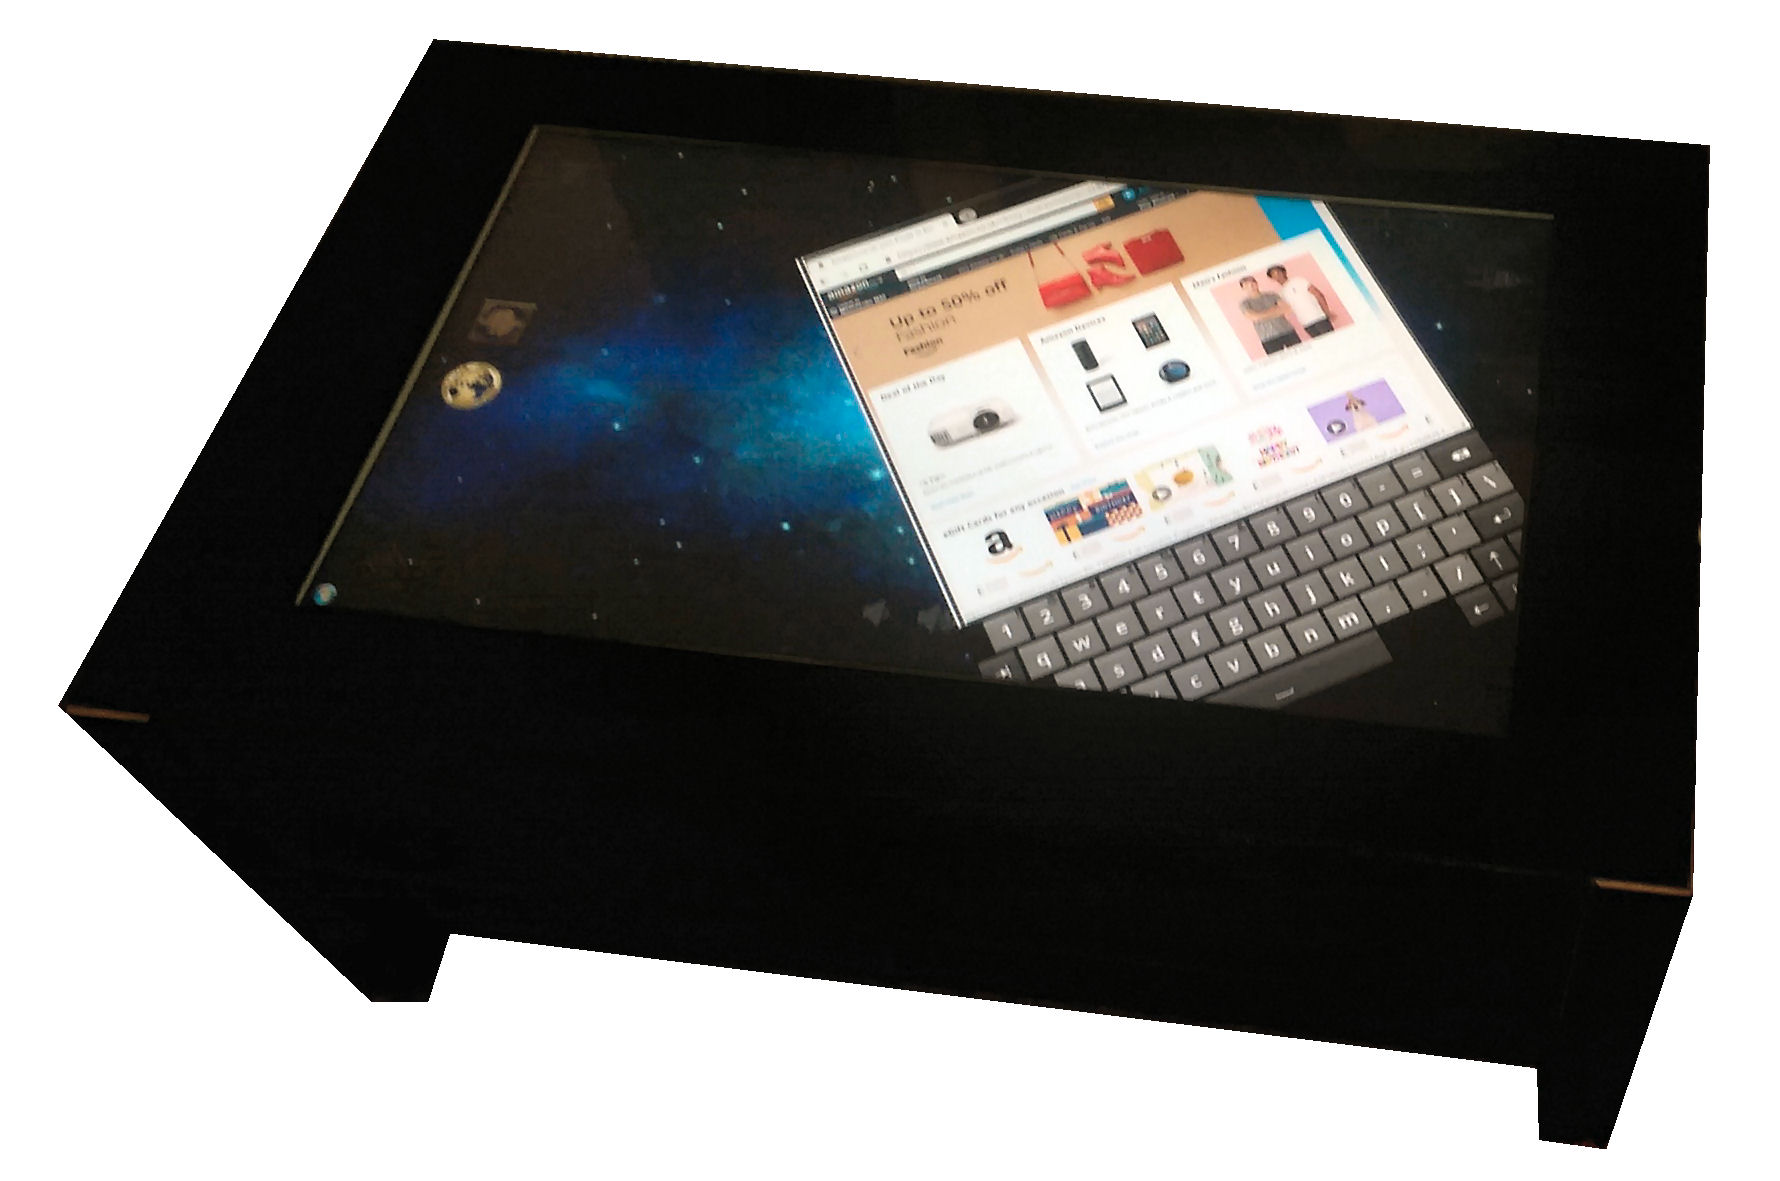 jigabyte touch screen coffee table